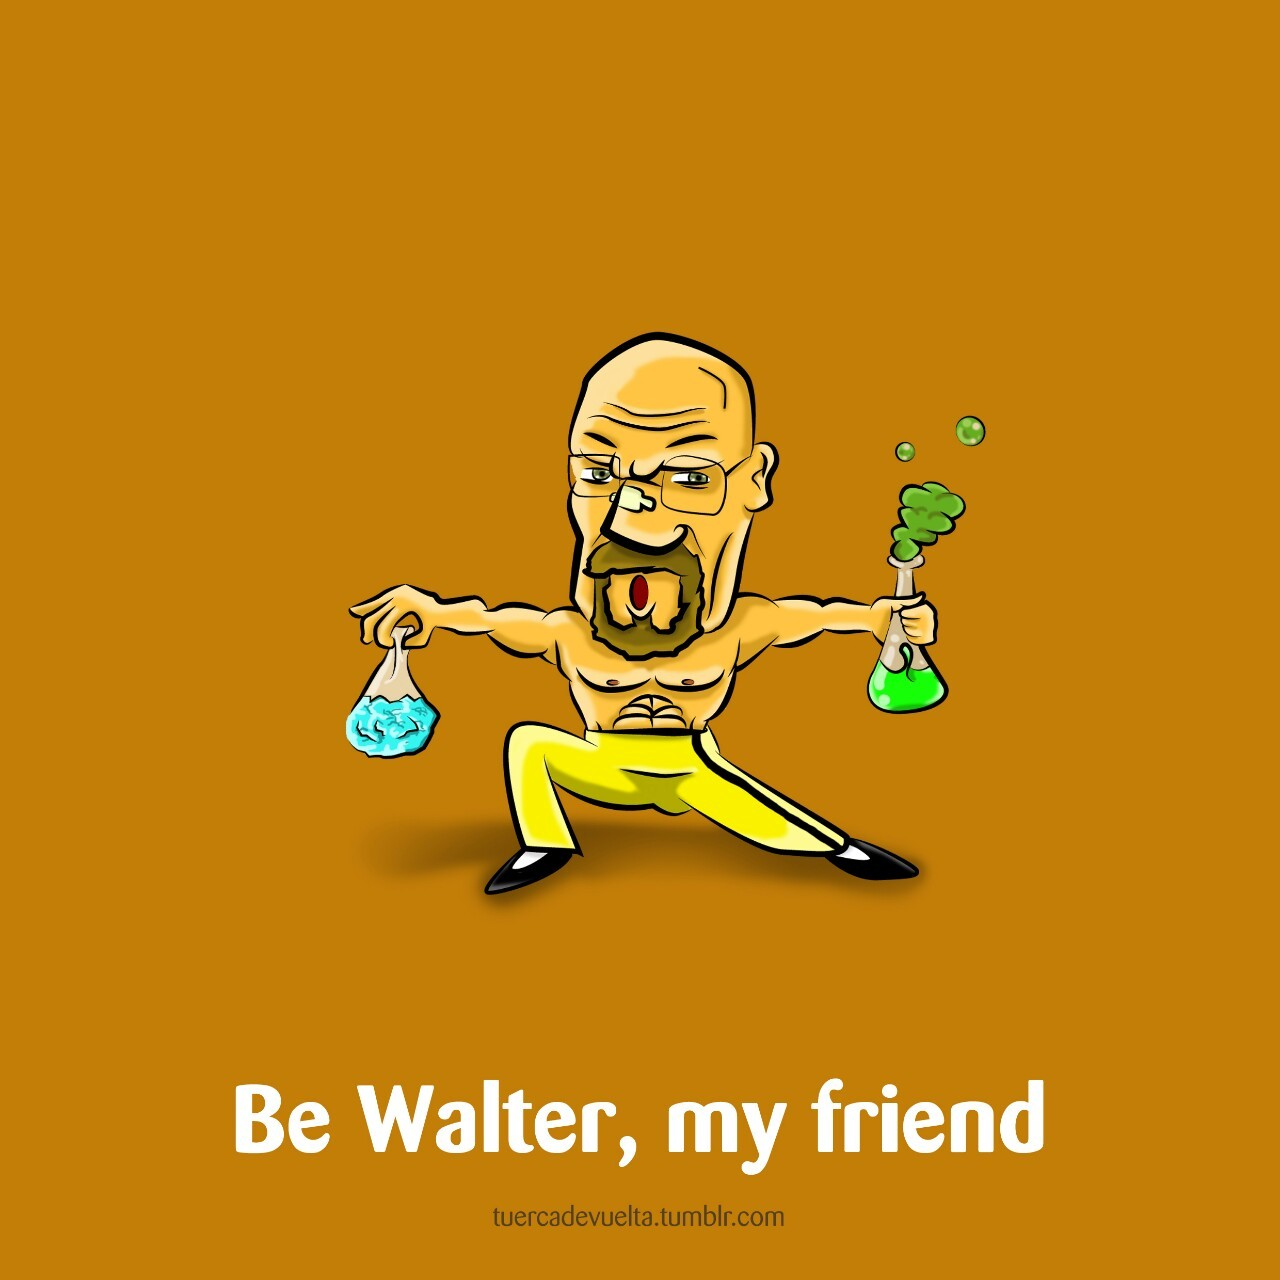 Be Walter, my friend: